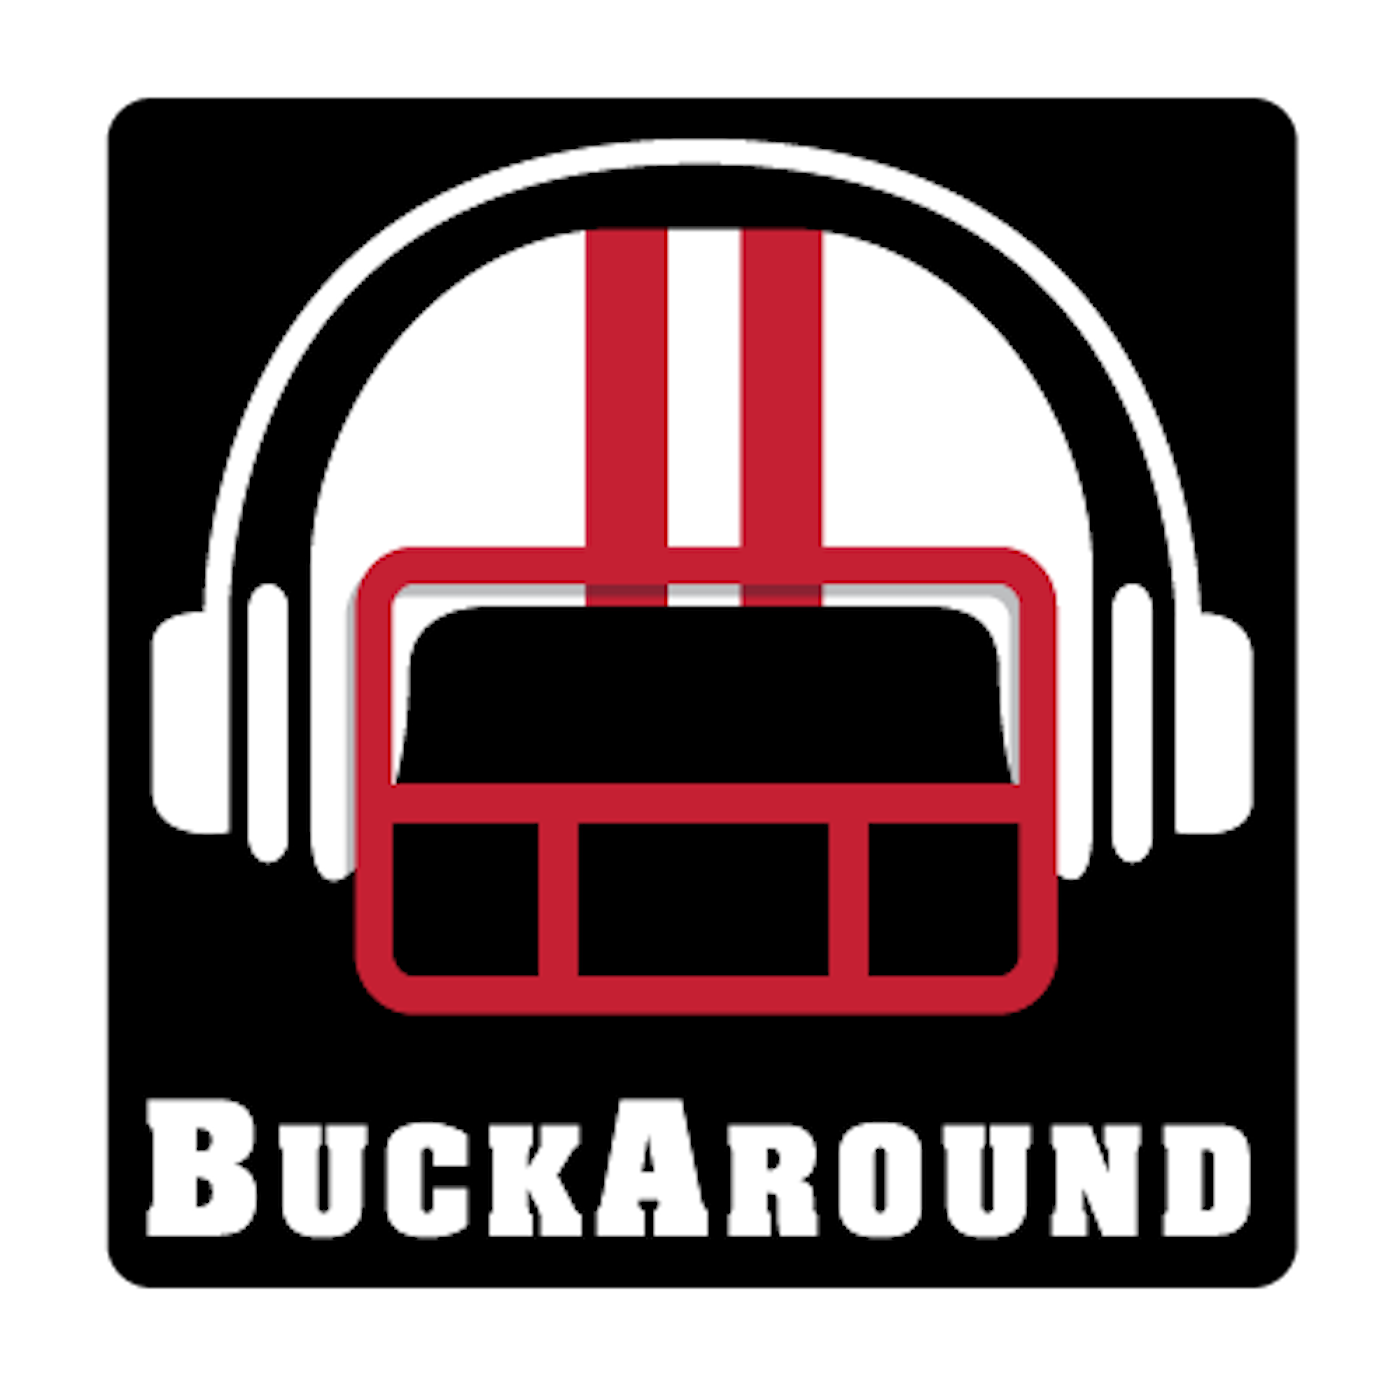 Wisconsin badgers football clipart graphic library stock BuckAround: A Wisconsin Badgers Football Podcast | Listen via ... graphic library stock